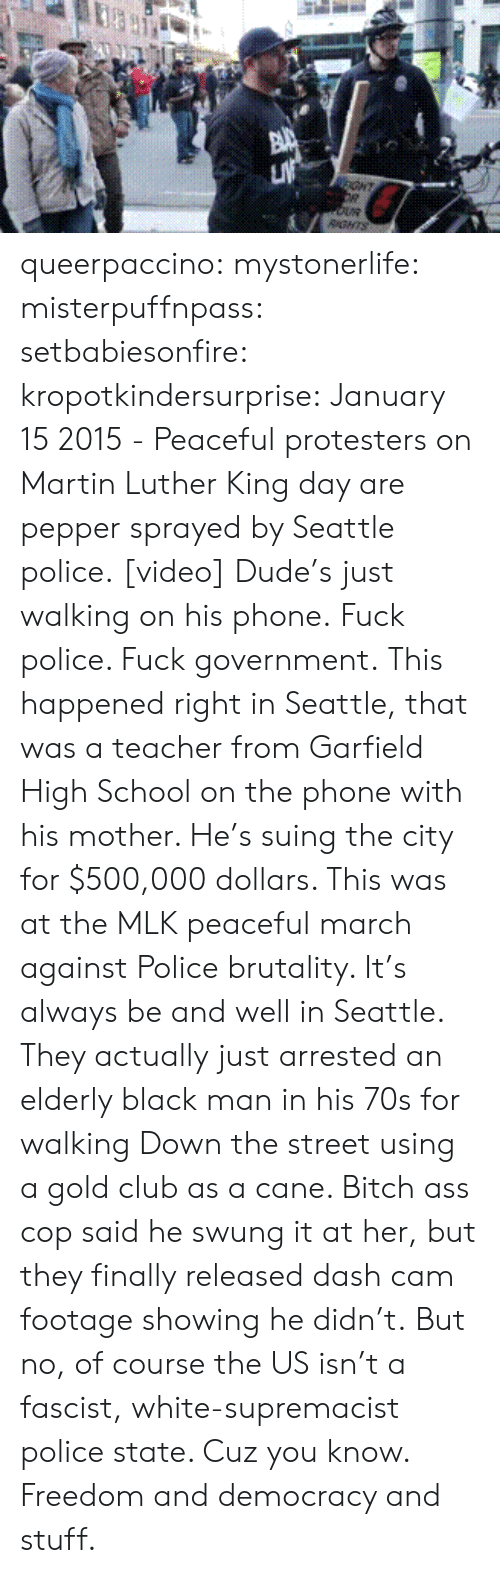 police brutality: GHT  RGNTS queerpaccino: mystonerlife:  misterpuffnpass:  setbabiesonfire:  kropotkindersurprise: January 15 2015 - Peaceful protesters on Martin Luther King day are pepper sprayed by Seattle police. [video] Dude's just walking on his phone.  Fuck police. Fuck government.  This happened right in Seattle, that was a teacher from Garfield High School on the phone with his mother. He's suing the city for $500,000 dollars. This was at the MLK peaceful march against Police brutality. It's always be and well in Seattle. They actually just arrested an elderly black man in his 70s for walking Down the street using a gold club as a cane. Bitch ass cop said he swung it at her, but they finally released dash cam footage showing he didn't.  But no, of course the US isn't a fascist, white-supremacist police state. Cuz you know. Freedom and democracy and stuff.